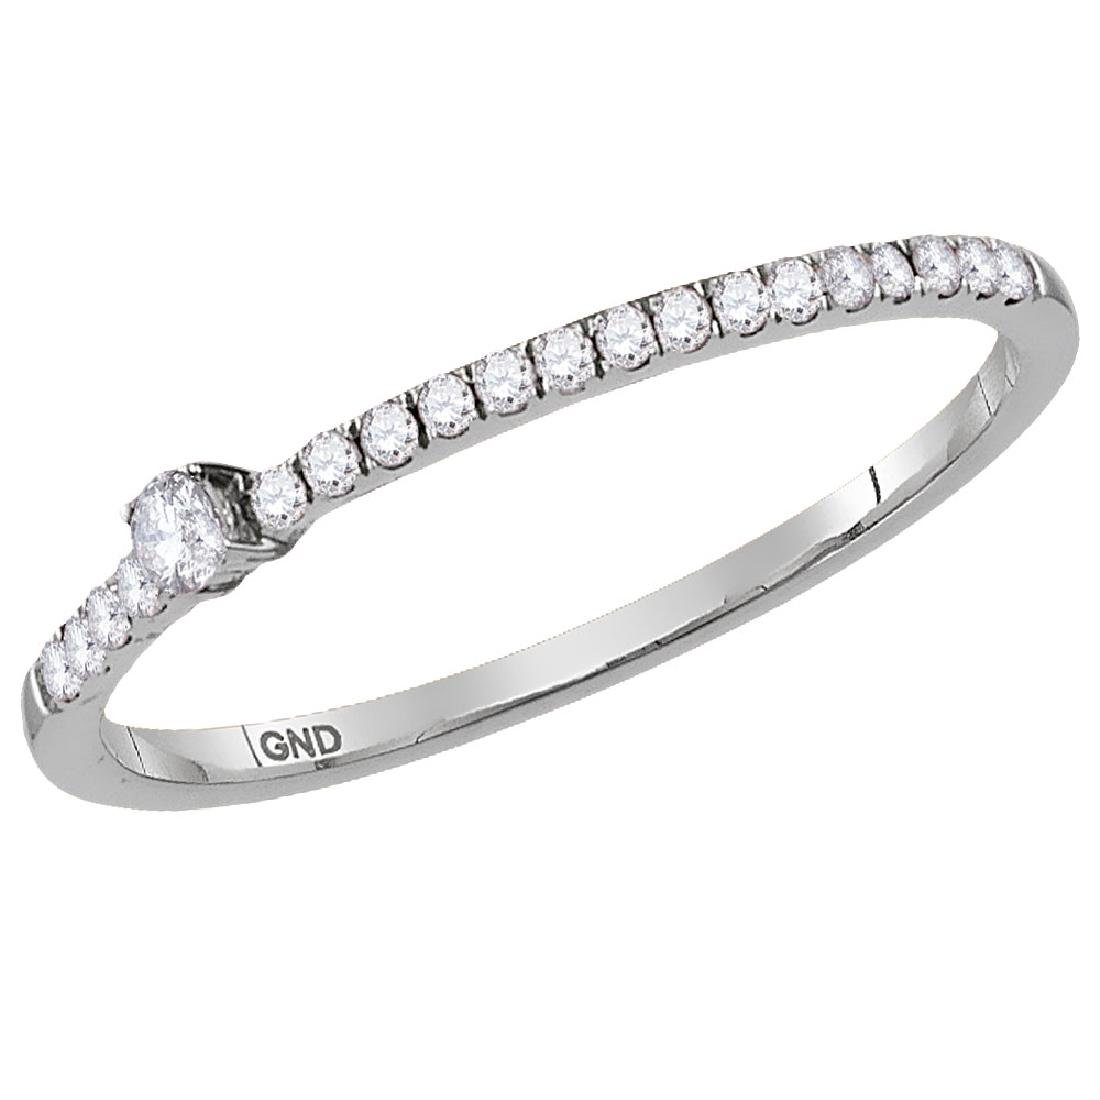 0.14 CTW Diamond Solitaire Stackable Ring 10KT White